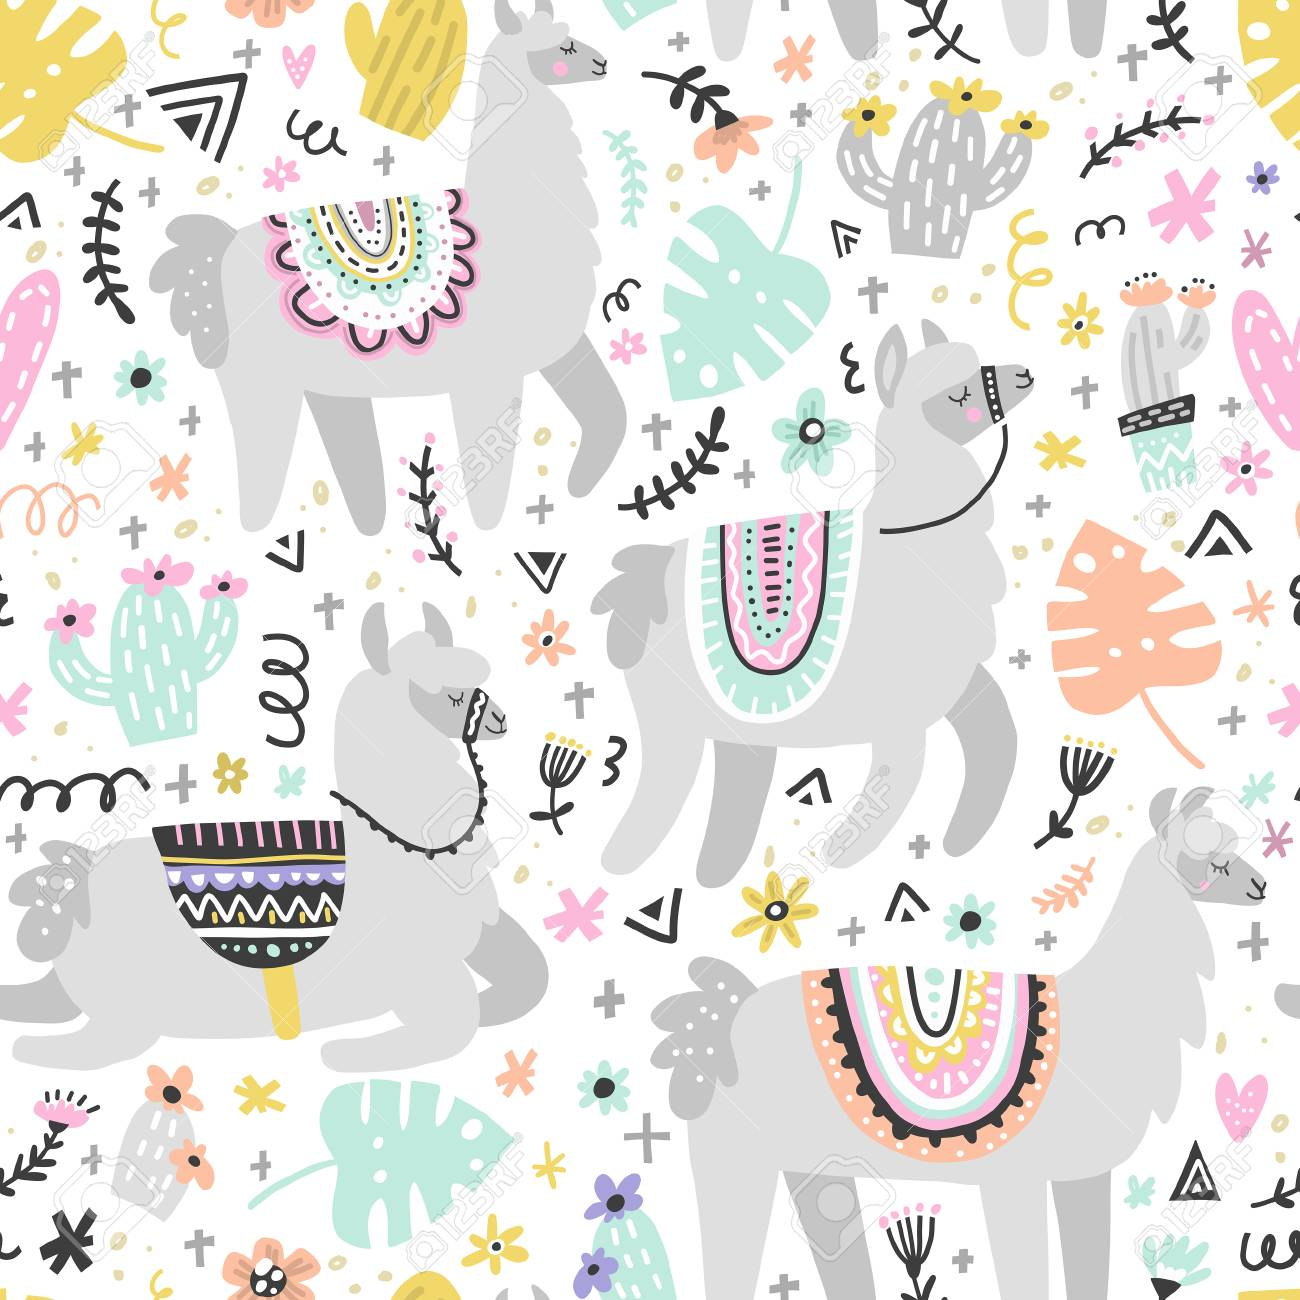 Seamless pattern with lamas made in vector. Modern hand drawn style. Good for wallpaper, greeting cards, children room decoration, etc. - 91662008